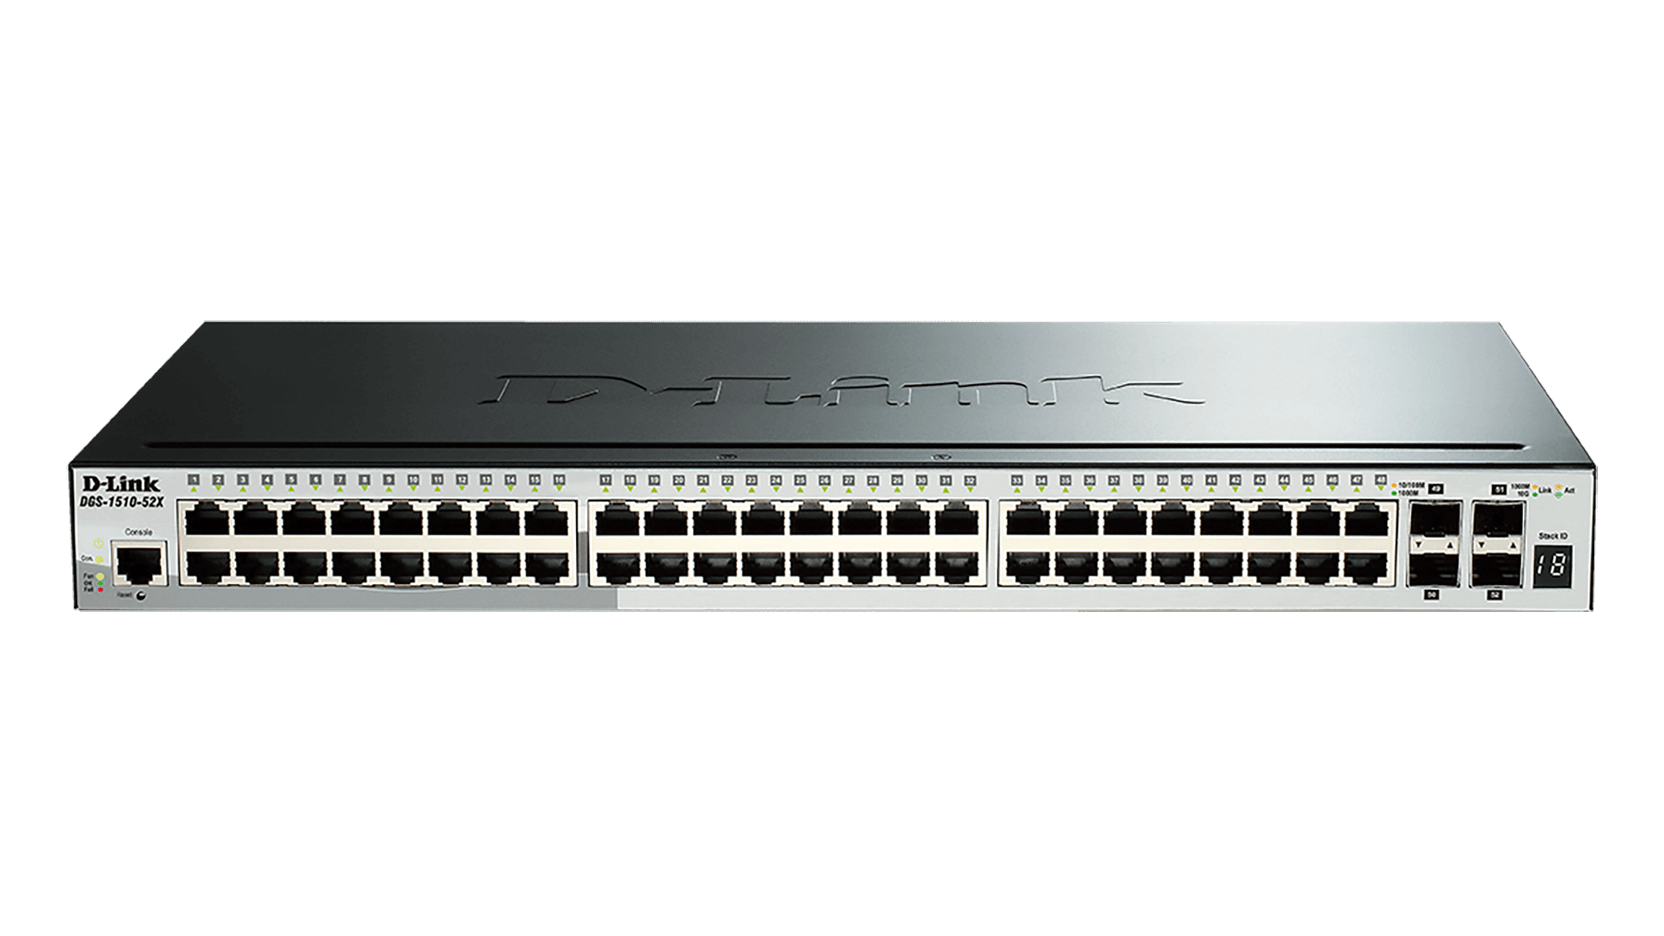 52-Port Gigabit Stackable Smart Managed Switch including 4 10G SFP+